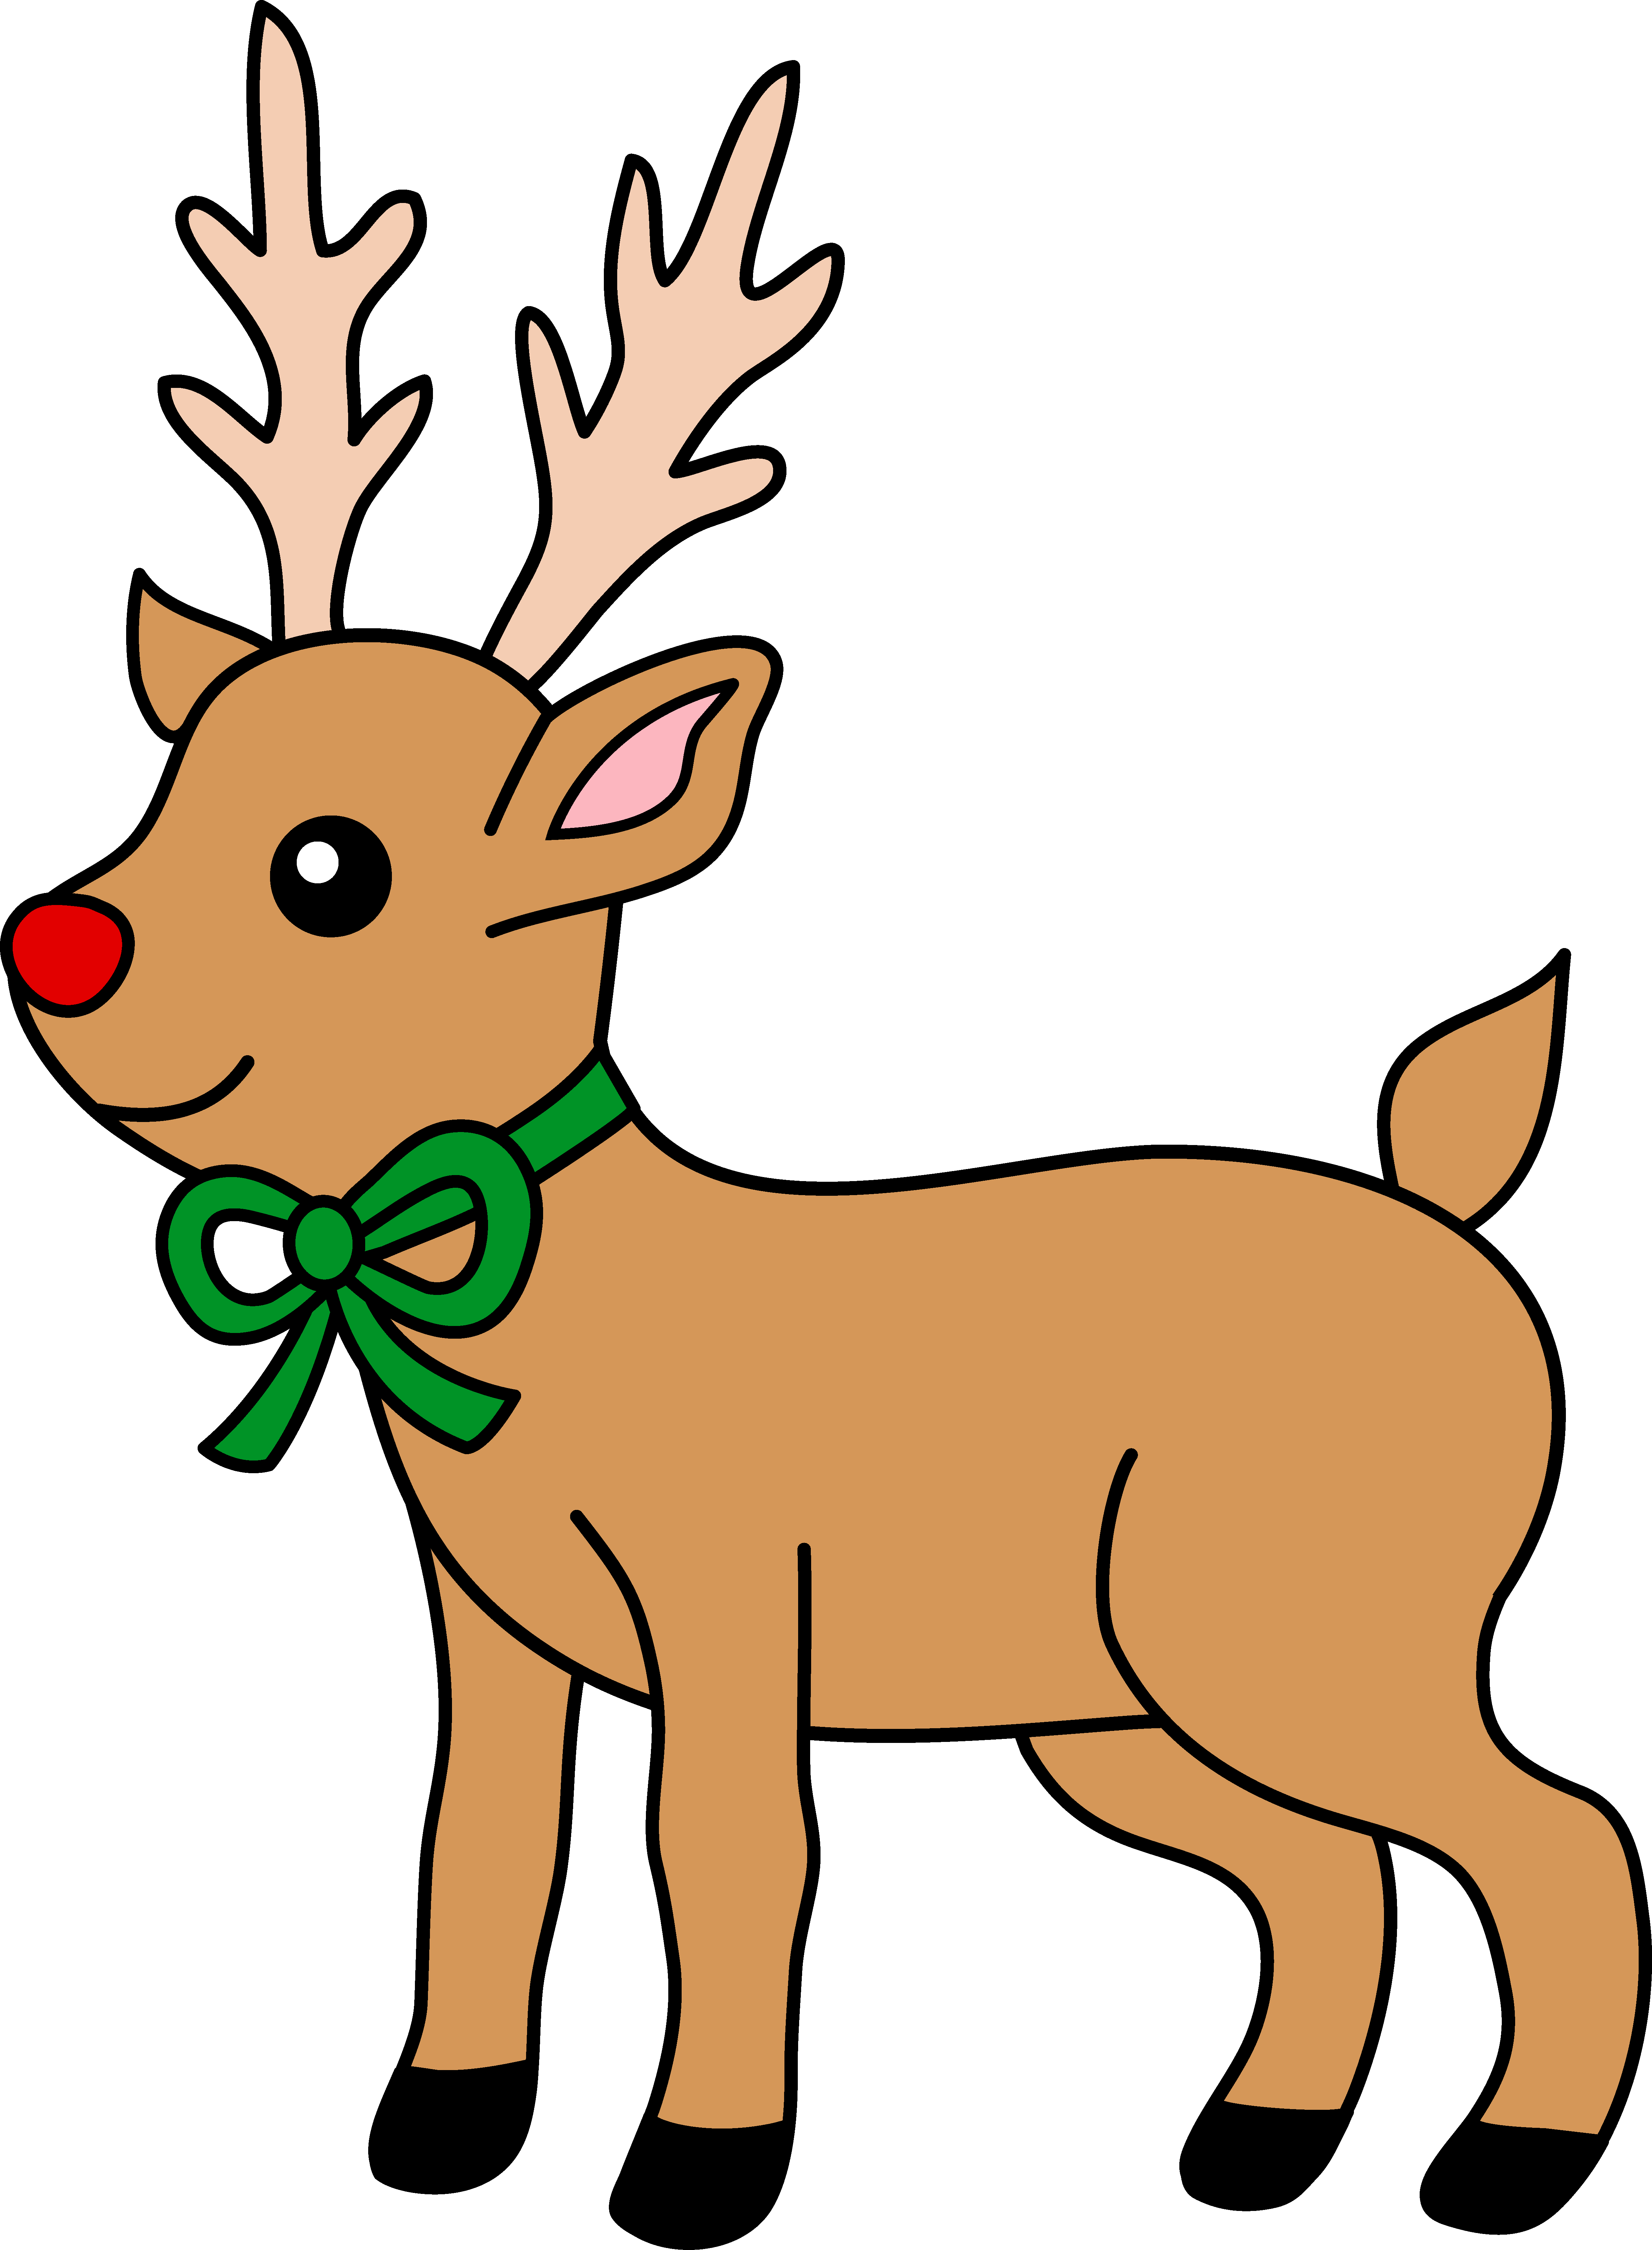 Drawn reindeer animated Nosed Clip Nosed Clip Clipart